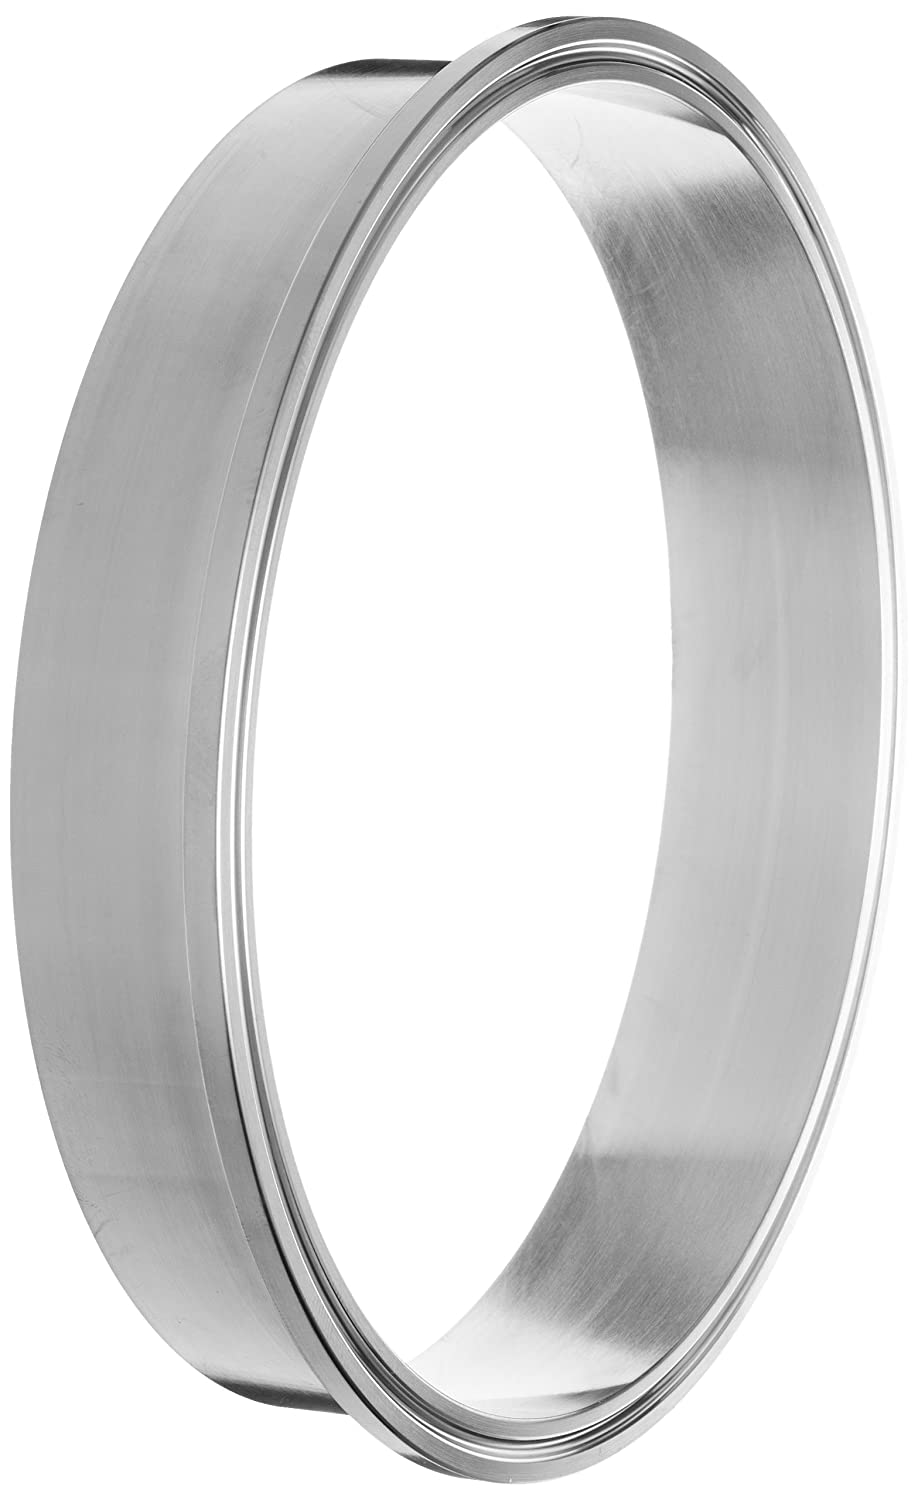 Dixon L14AM7-G100 Stainless Steel 304 Sanitary Fitting, Long Weld Clamp Ferrule, 1